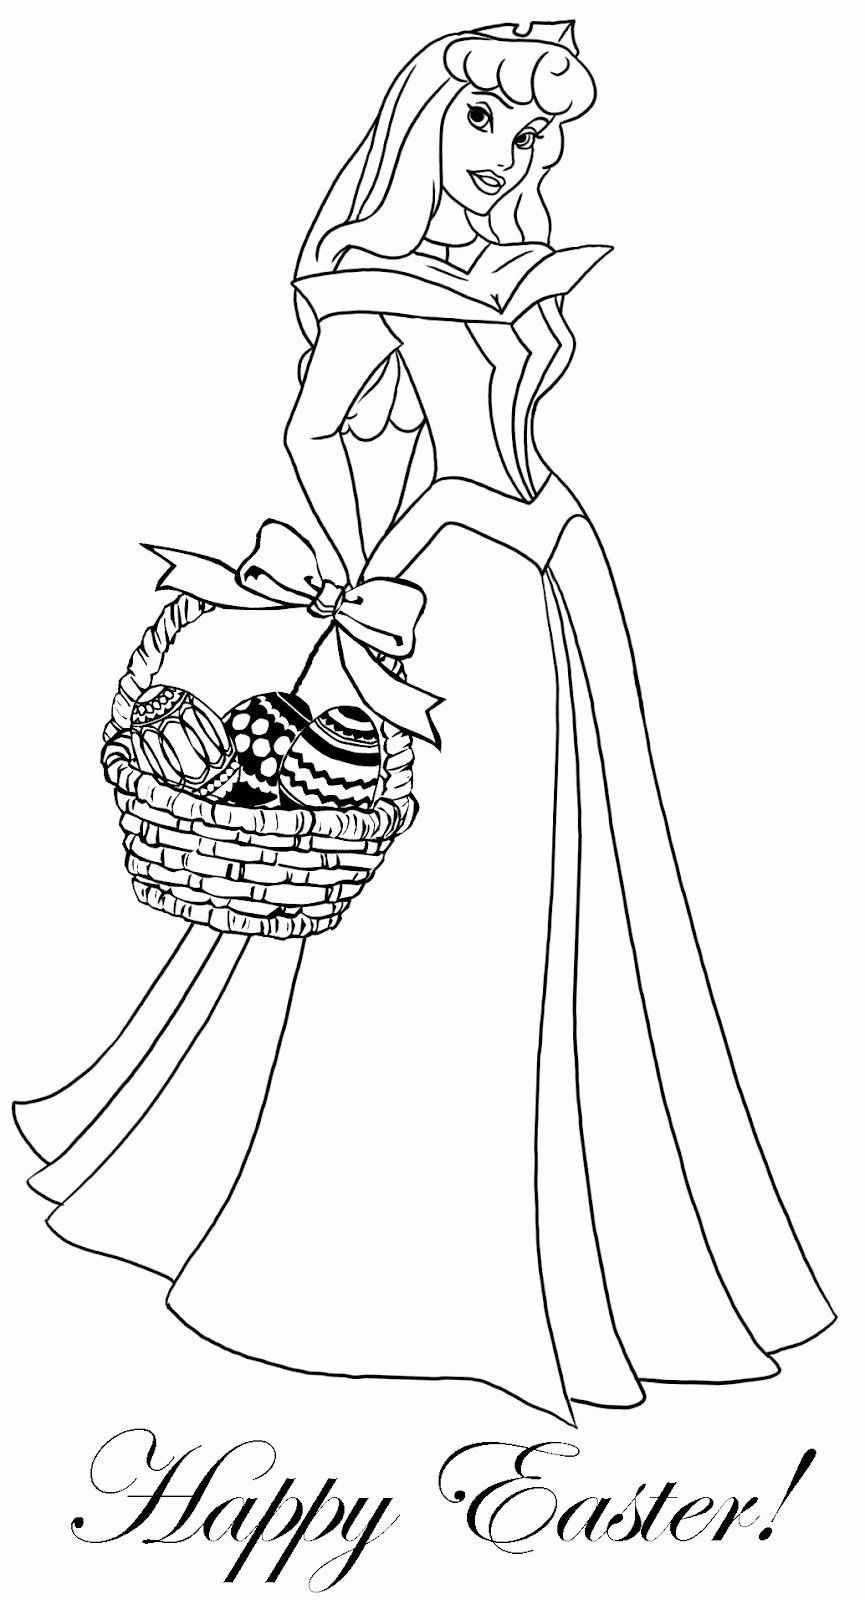 16 Free Easter Printable Coloring Pages For Kids Honey Lime Free Easter Coloring Pages Coloring Easter Eggs Easter Coloring Pages Printable